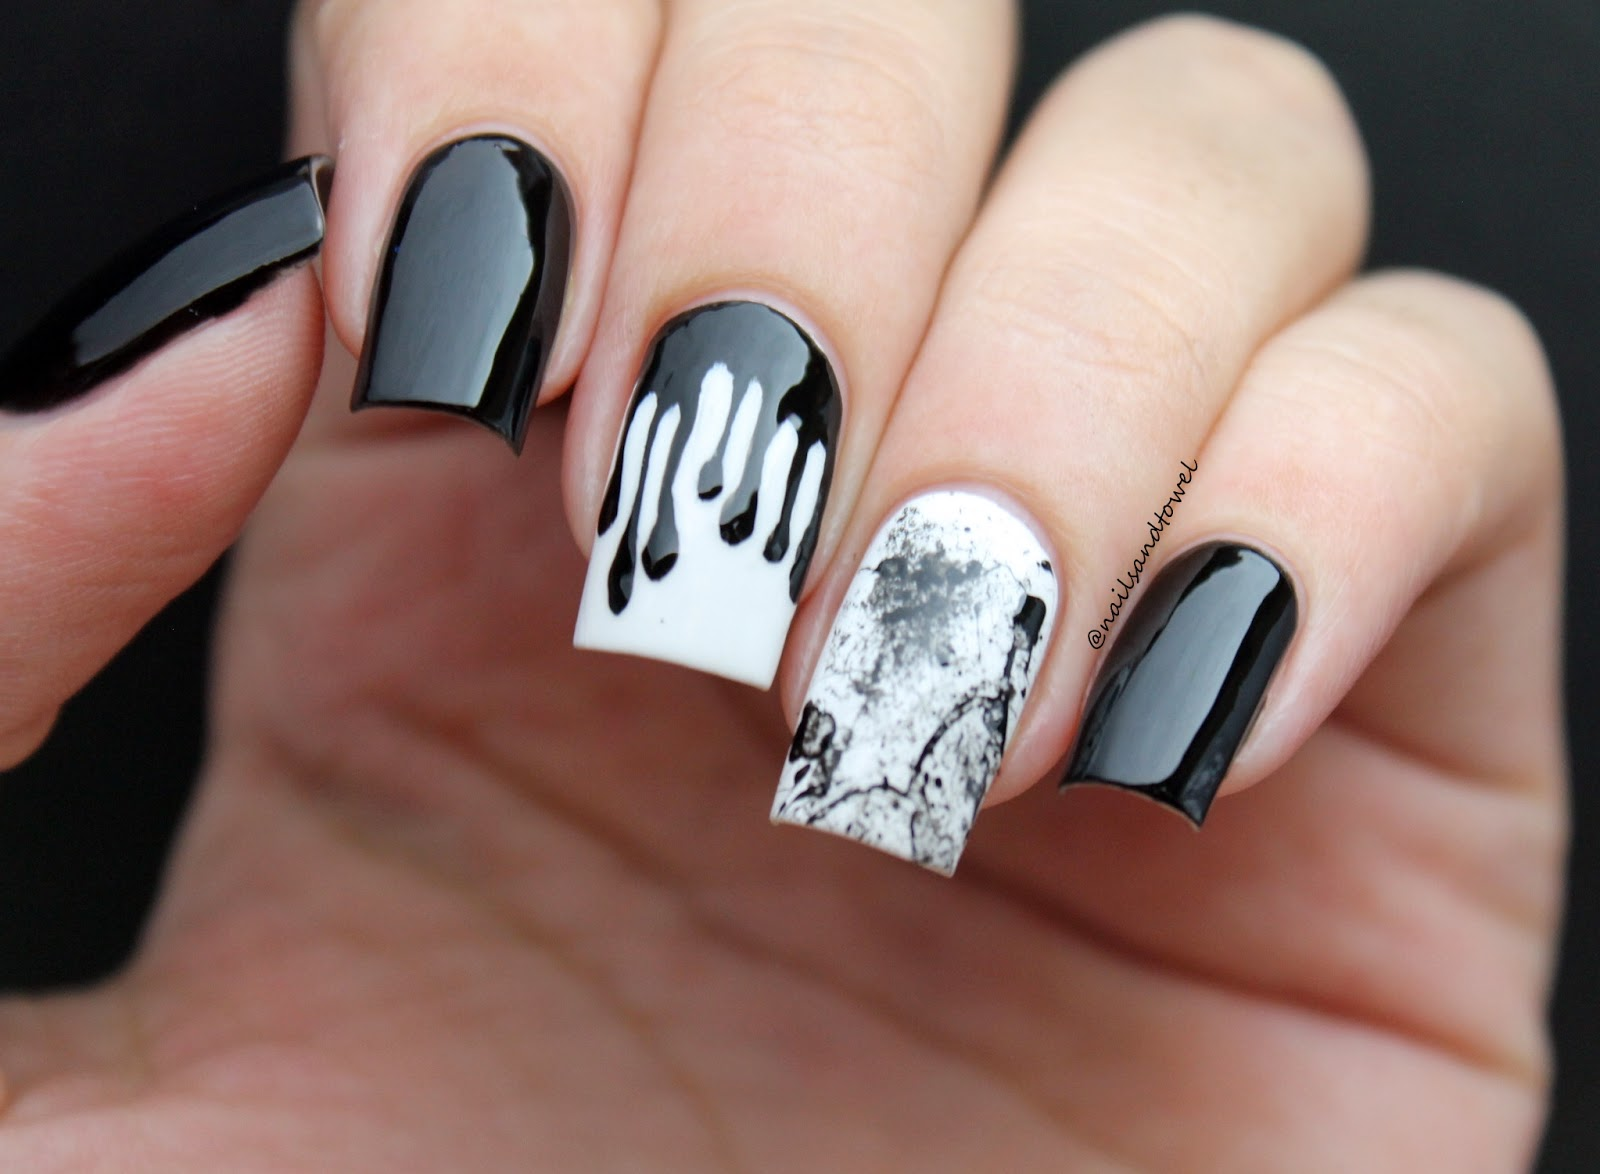 My Nail Art Journal Black White Dripping Paint Nails Inspired